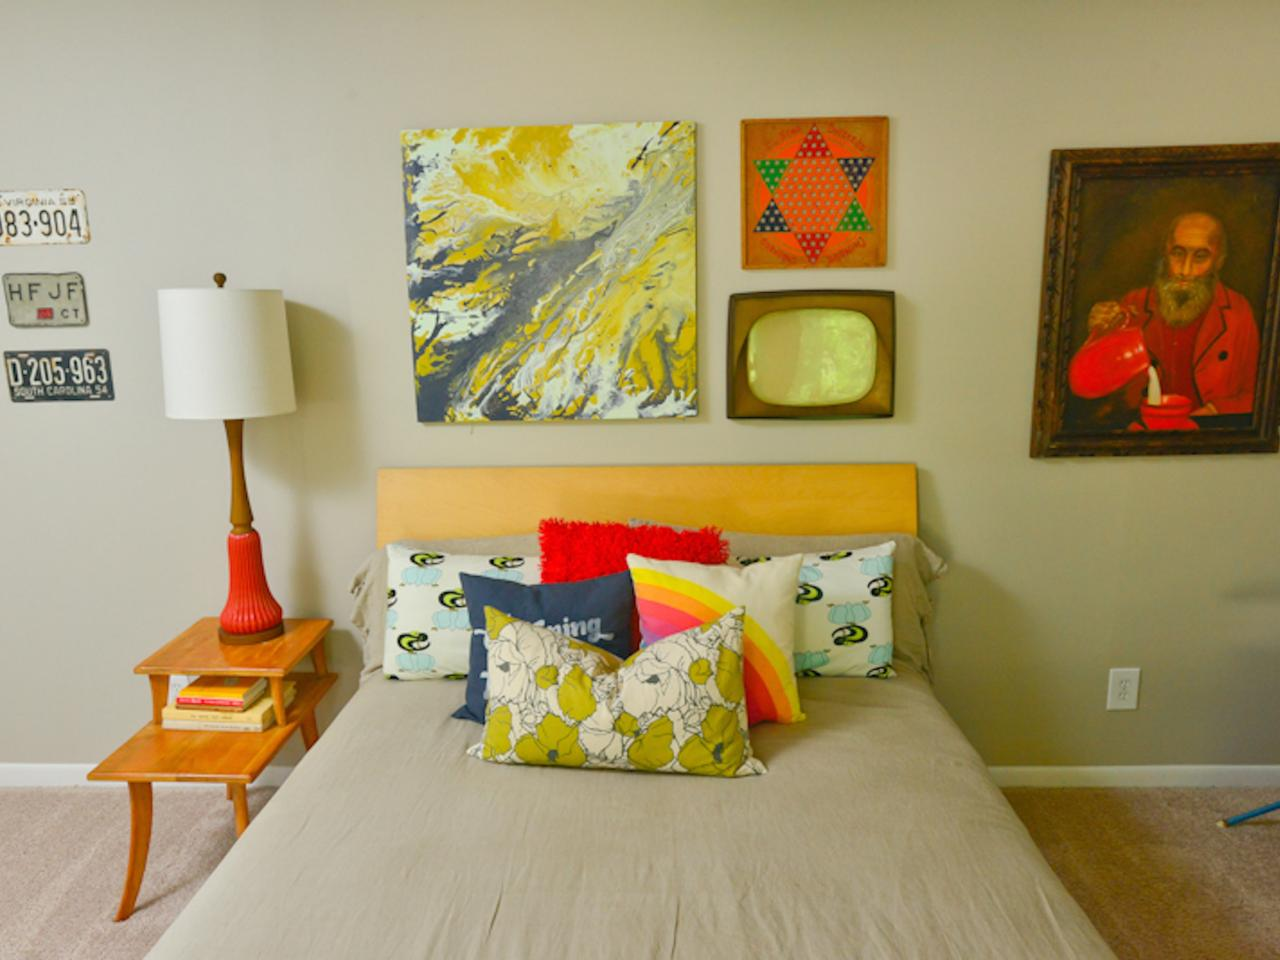 Wall Decor Tricks: Try Decorating in Threes | DIY Network Blog: Made ...